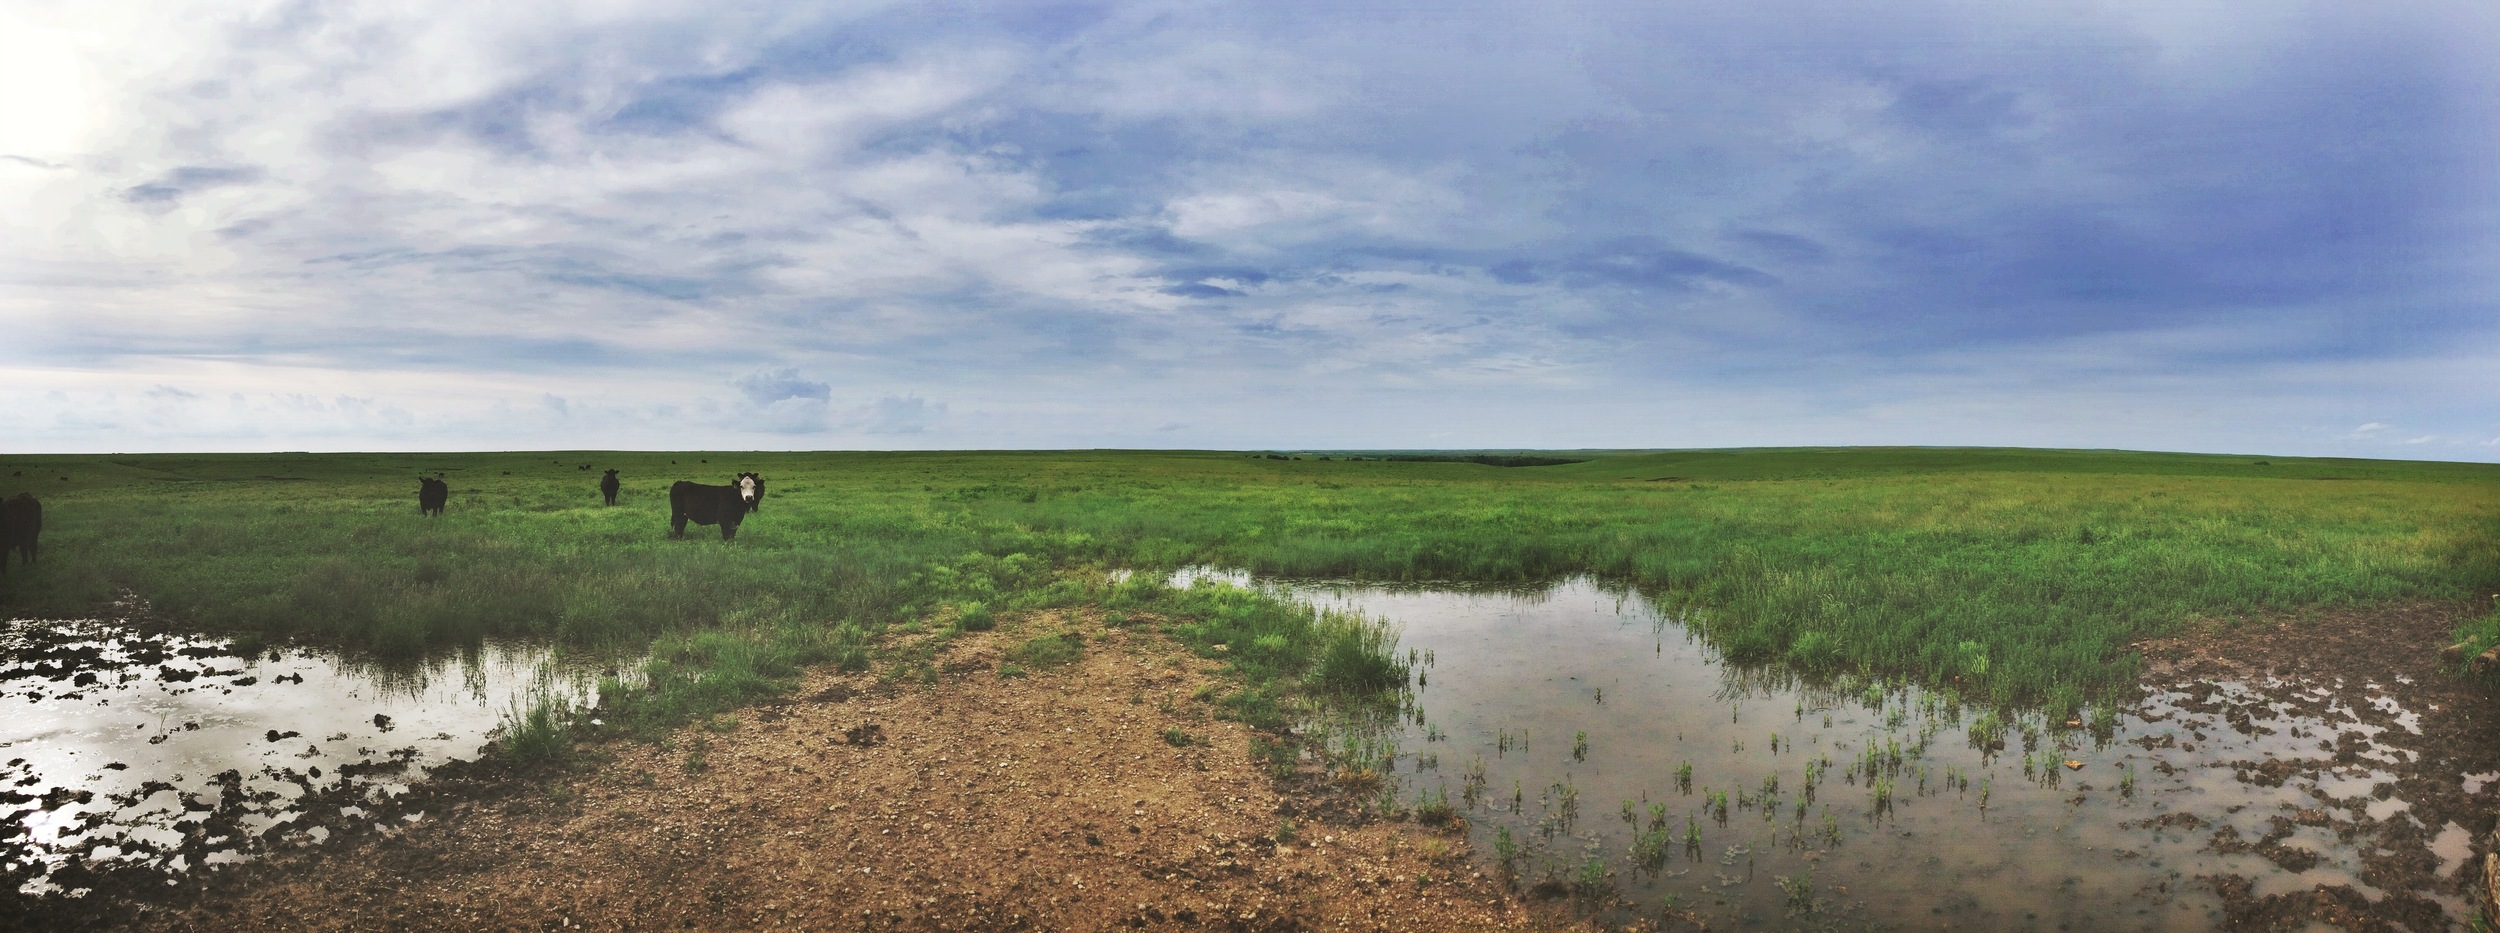 The open plains are home to a number of cattle. Green stretches as far as you can see until it meets the blue sky.